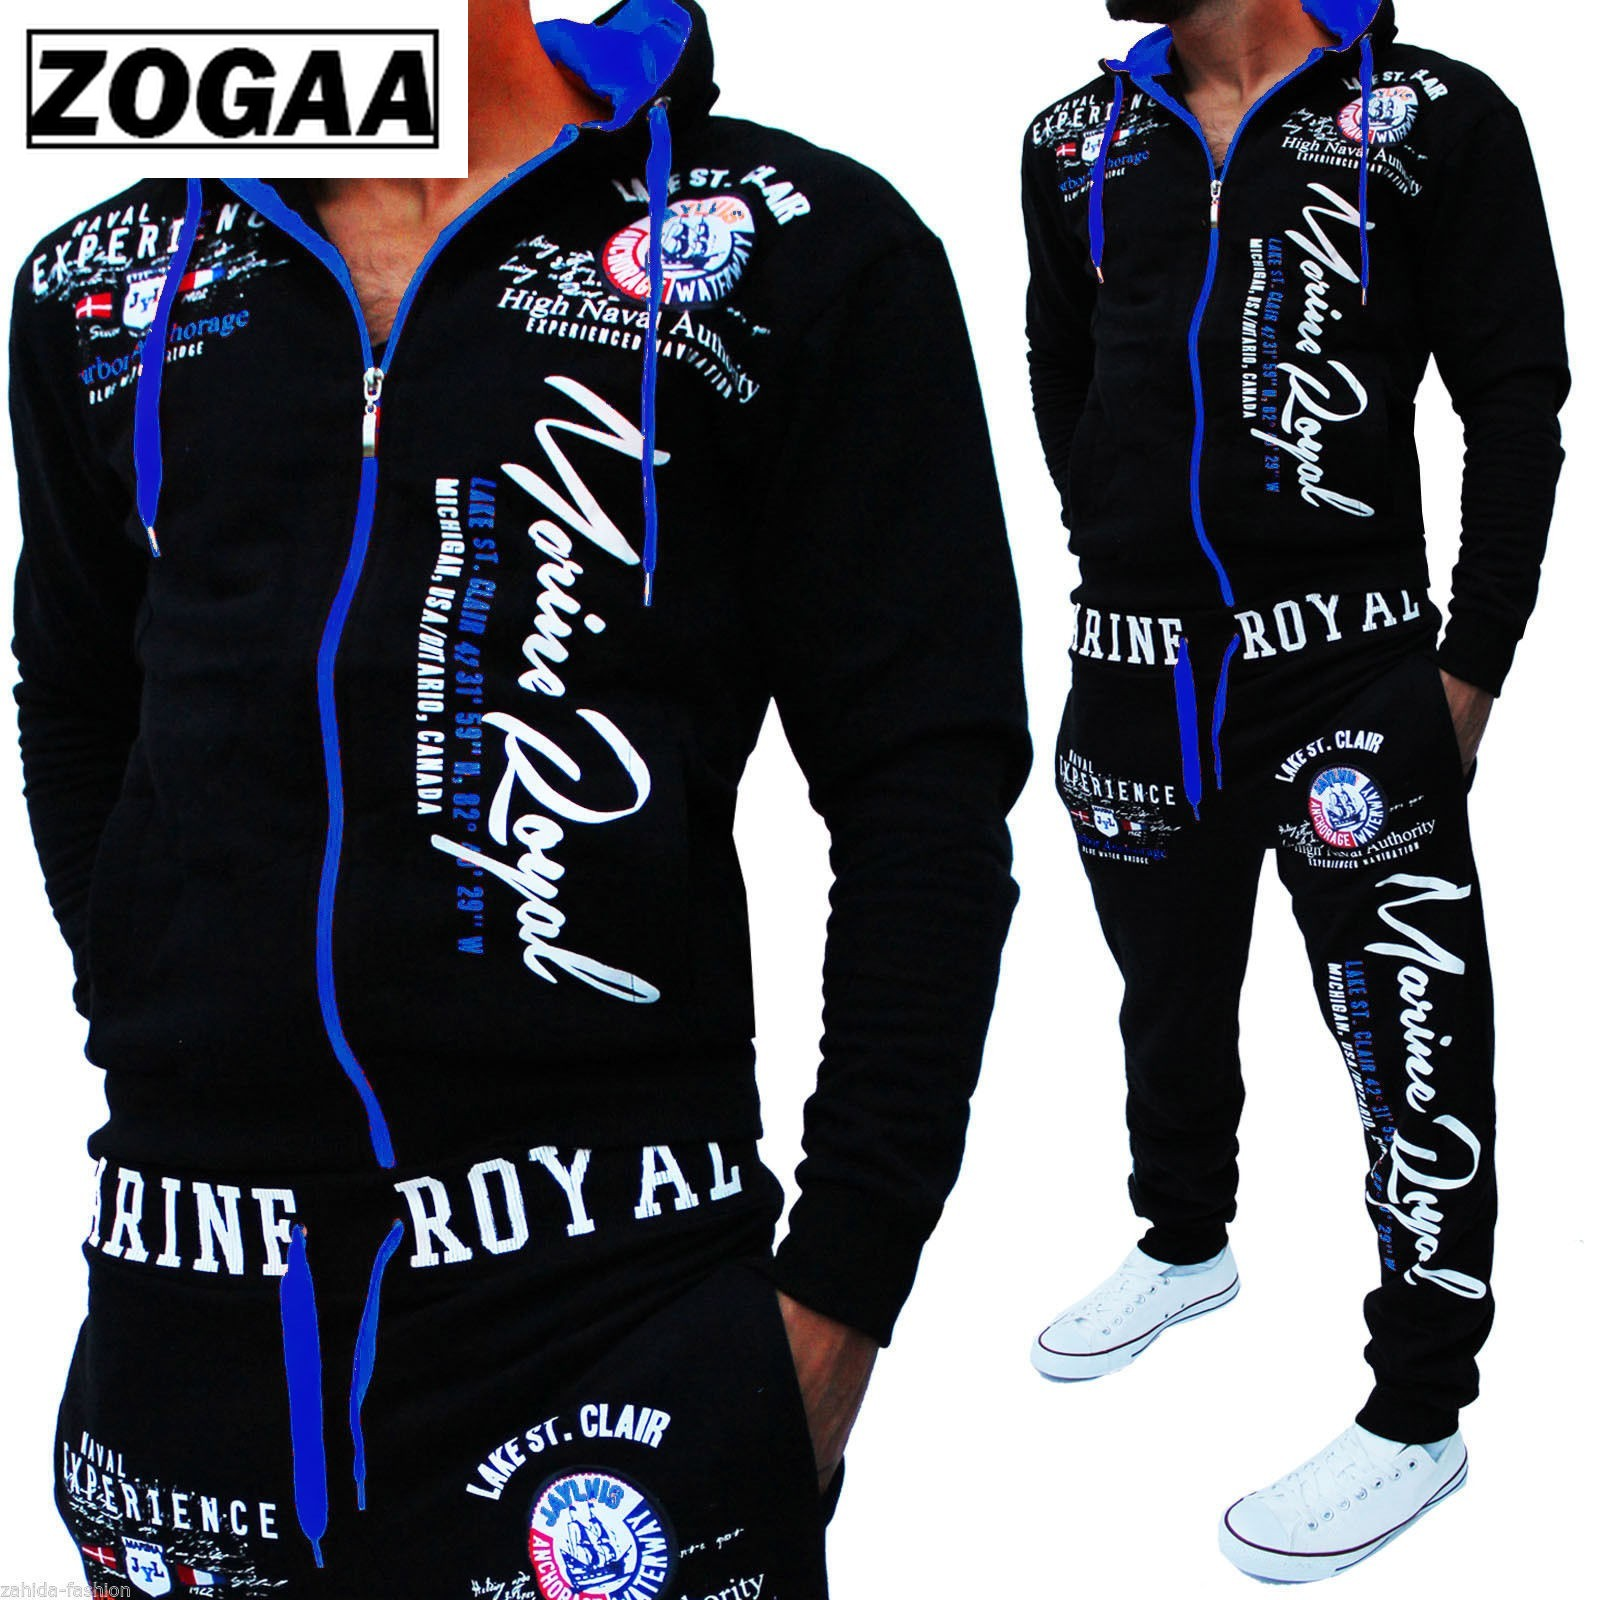 ZOGAAnew 8color men 39 s fashion two piece men 39 s casual sportswear hooded sweatshirt and pants suit letter printed sportswear s 3xl in Men 39 s Sets from Men 39 s Clothing